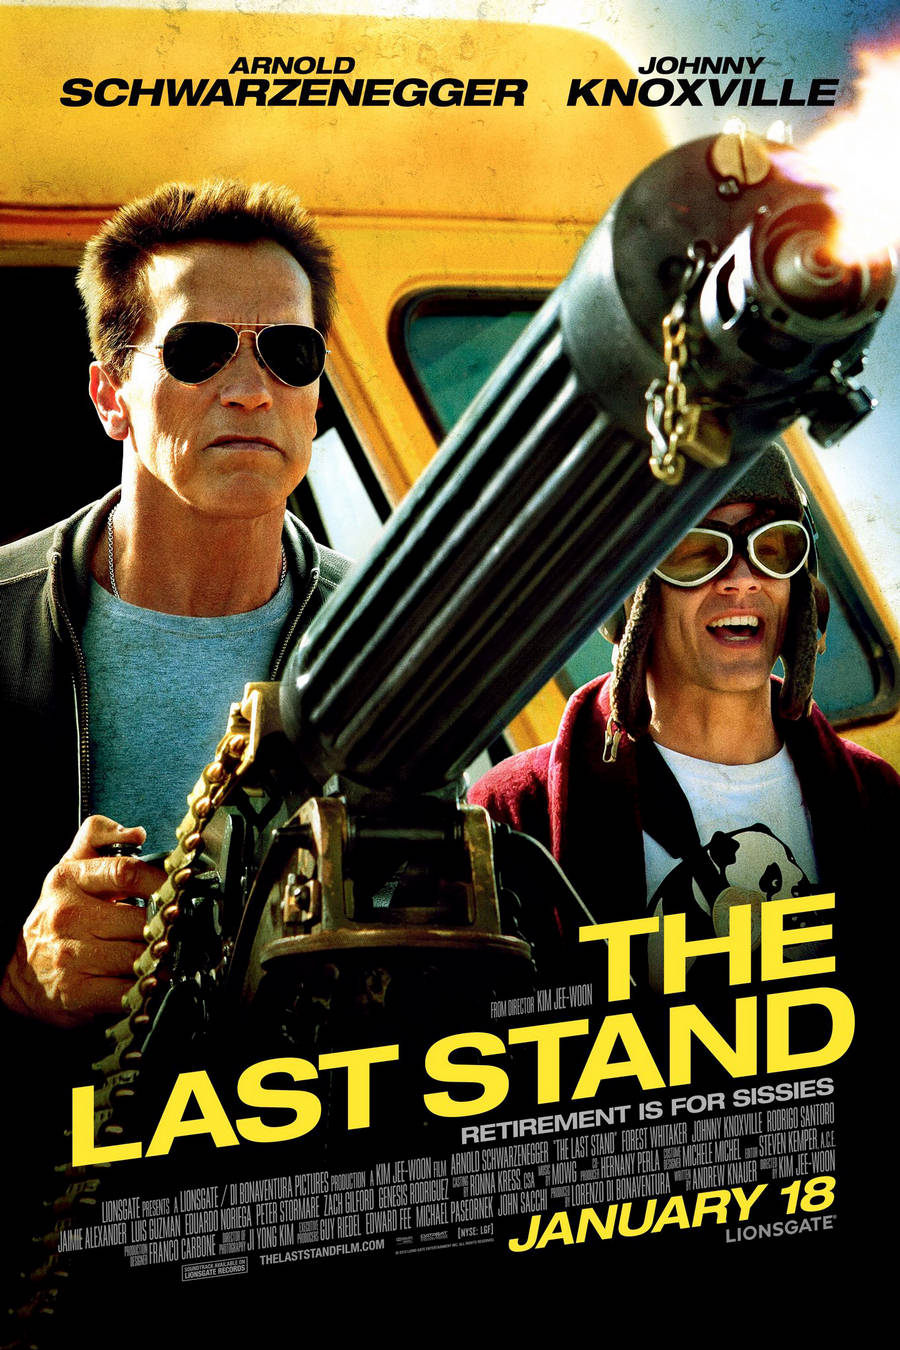 The Last Stand 2013  Arnold New Movie